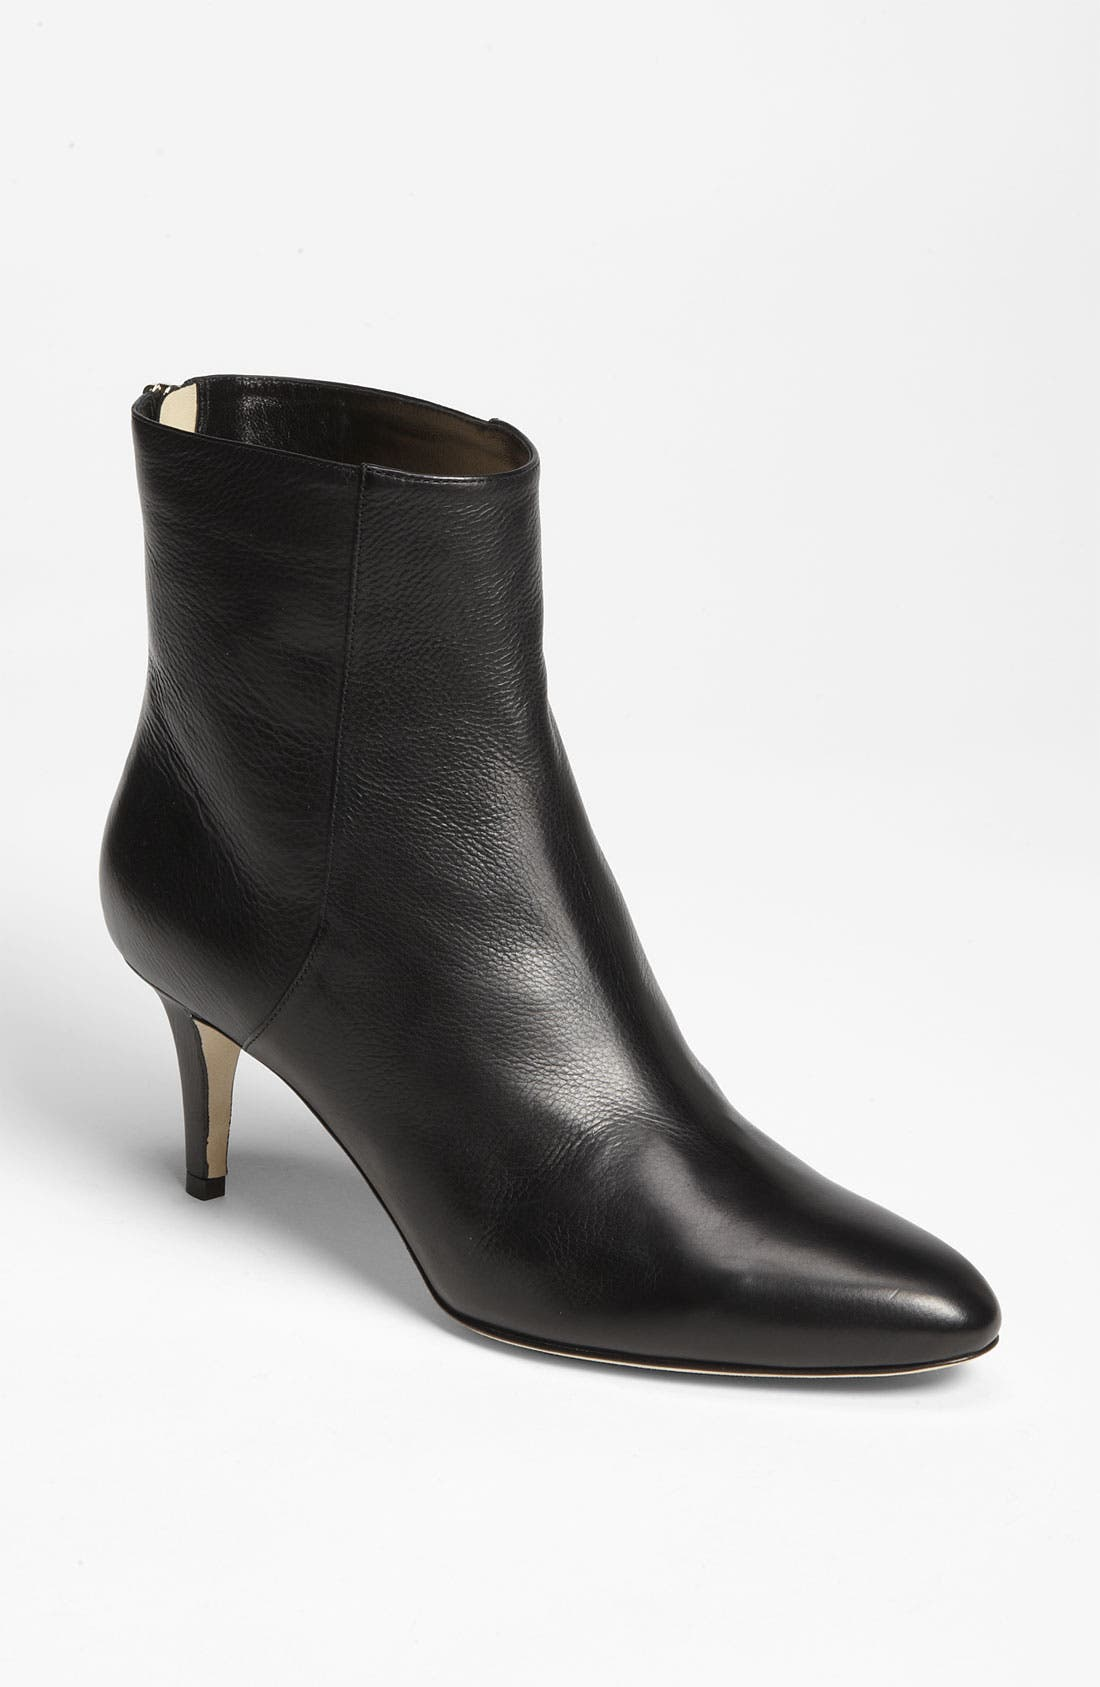 Alternate Image 1 Selected - Jimmy Choo 'Brody' Short Boot